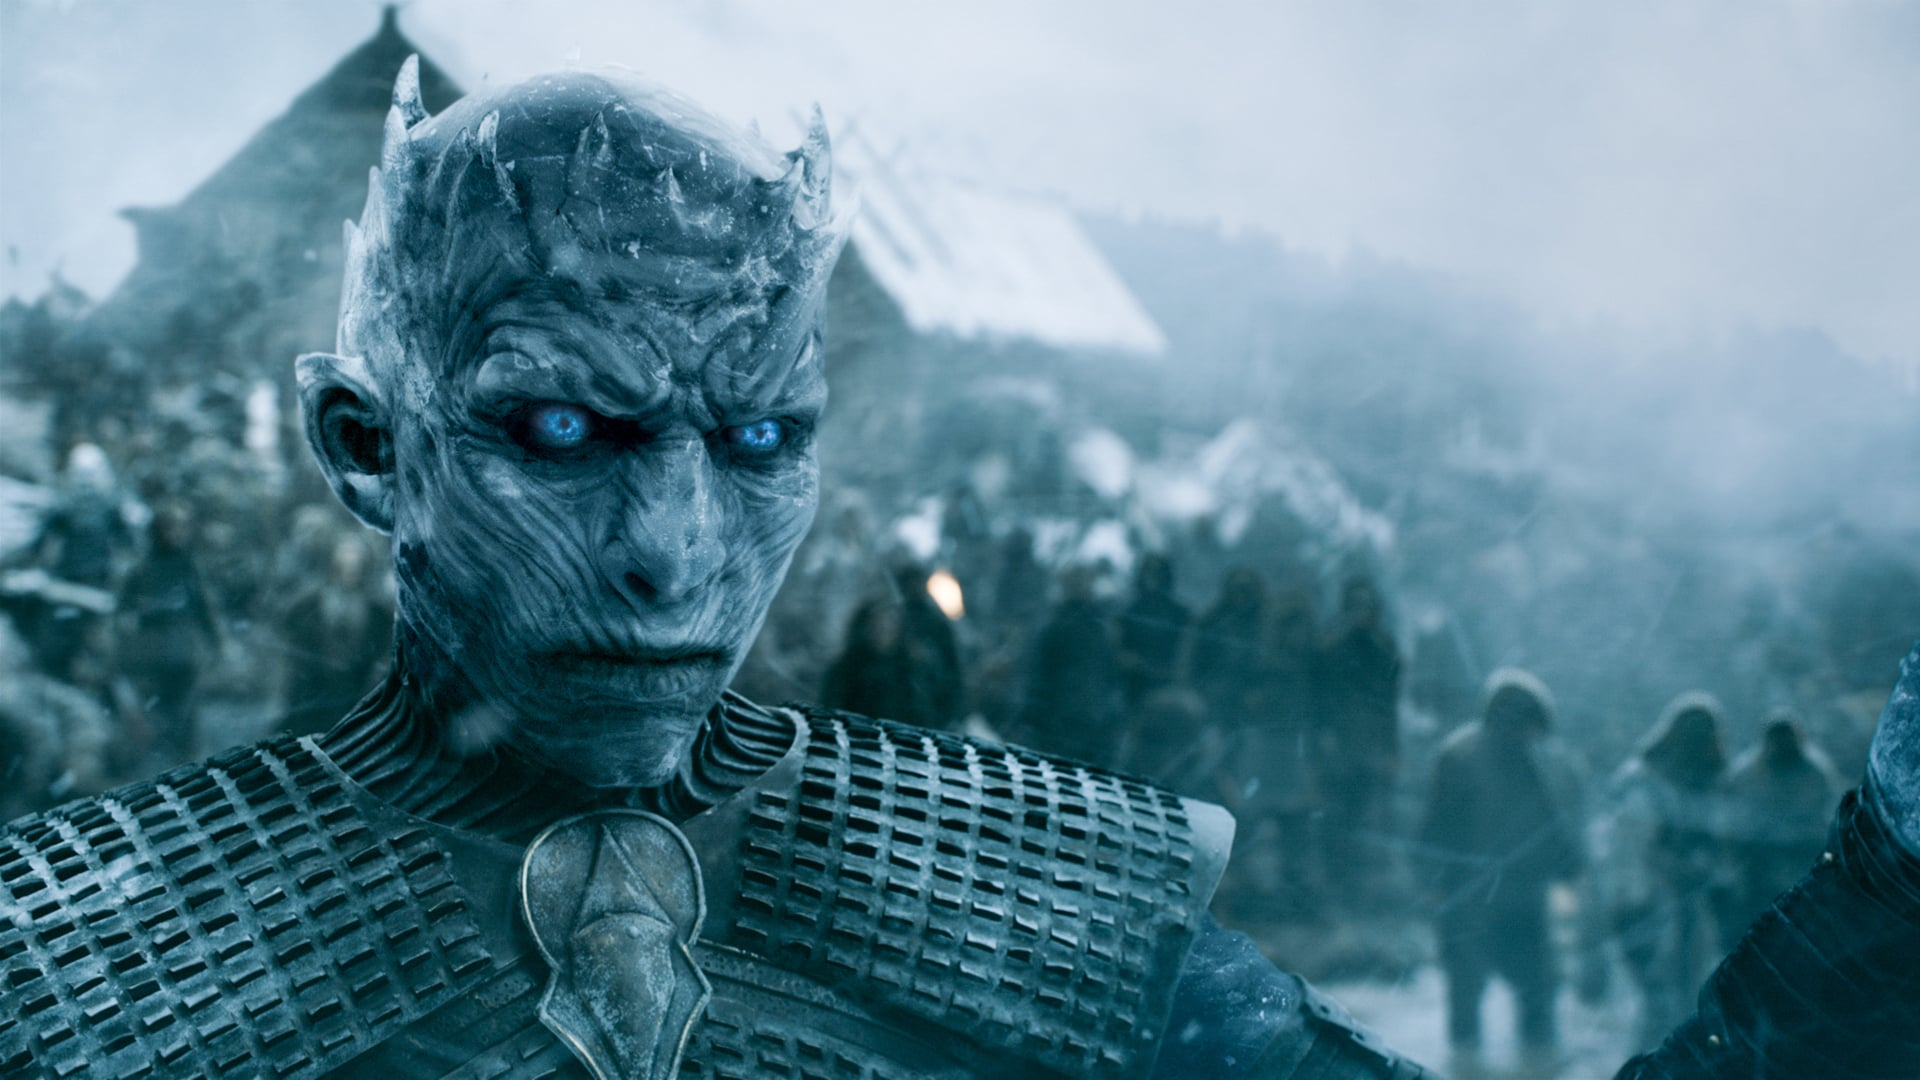 Game of Thrones: If You Really Think About It, the Night King Could Absolutely Be a Stark